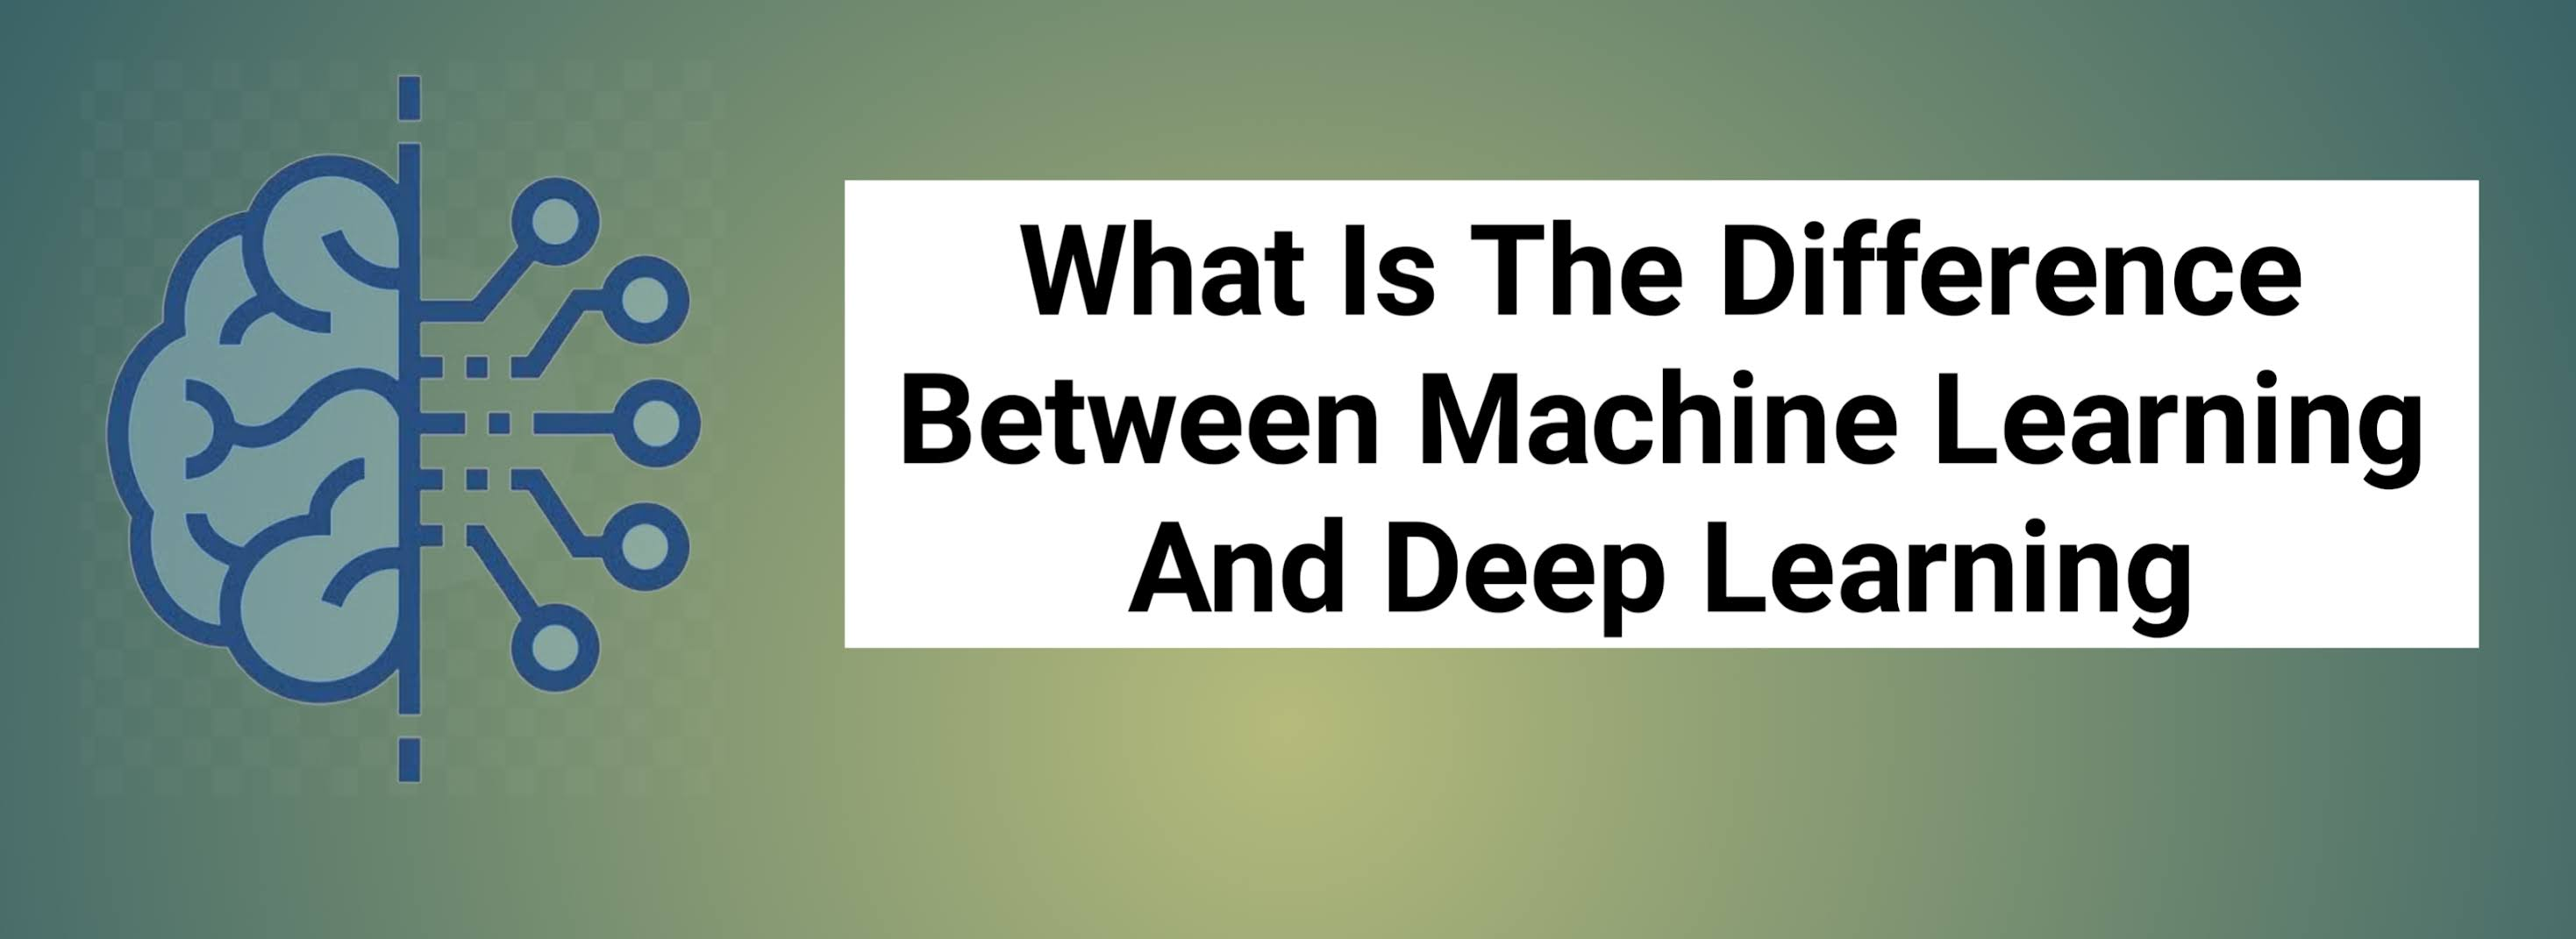 What Is The Difference Between Machine Learning And Deep Learning